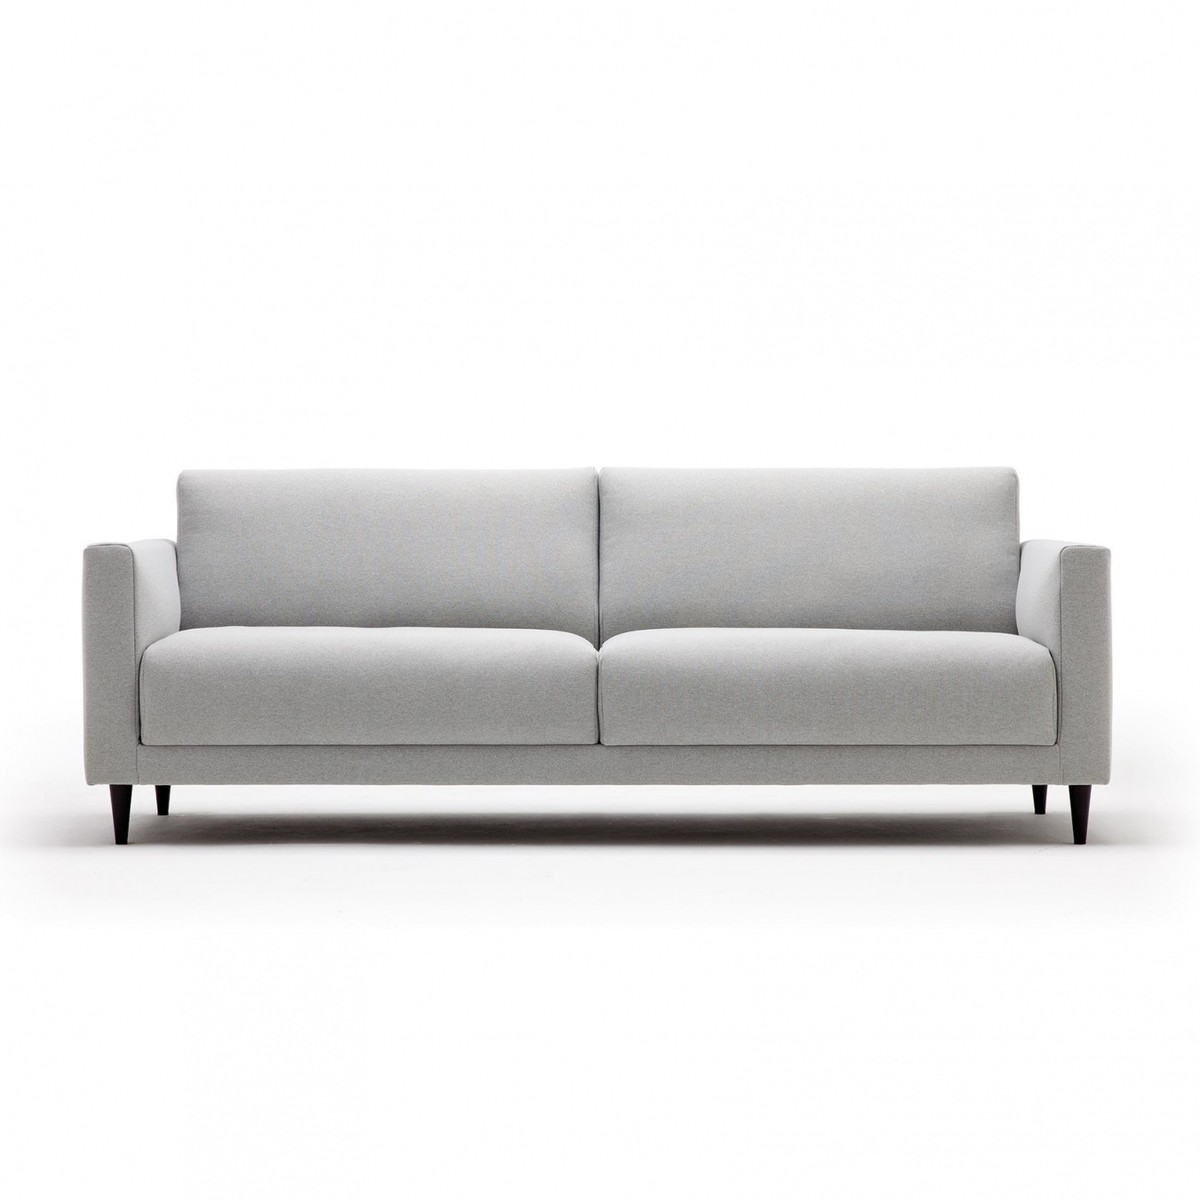 Freistil 141 3 Seater Sofa Frame Wood Freistil Rolf Benz